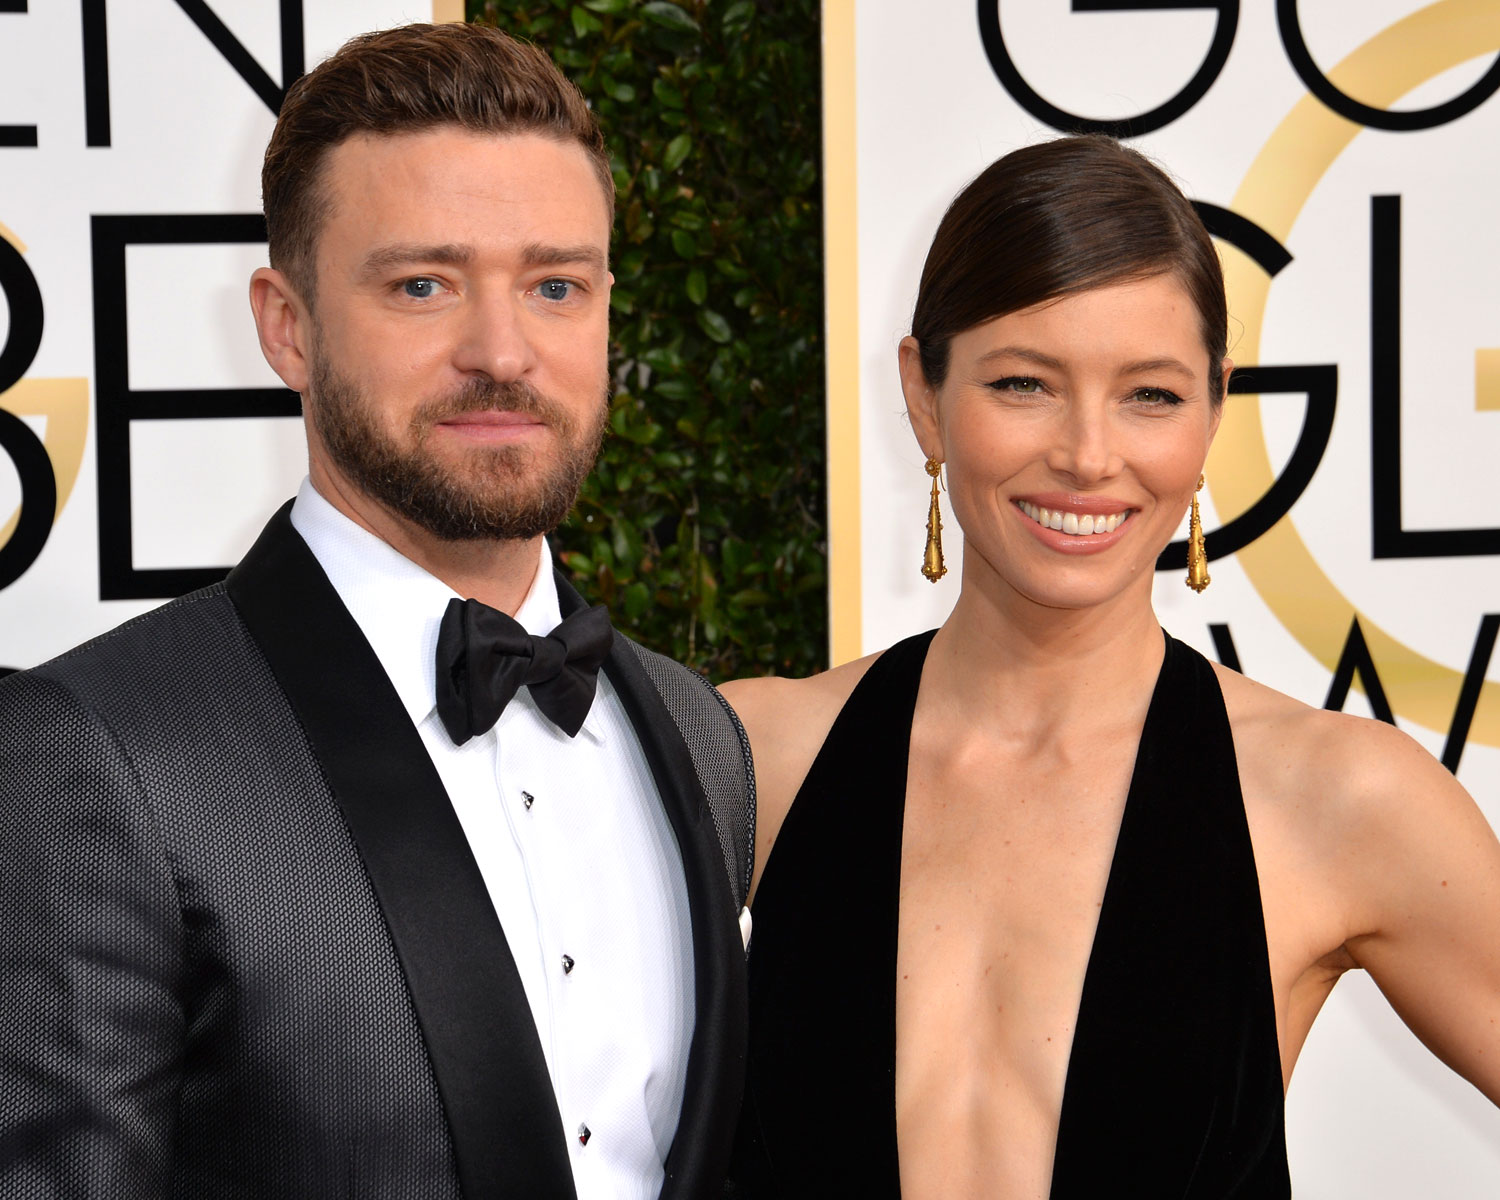 Jessica Biel opens up about Justin Timberlake engagement